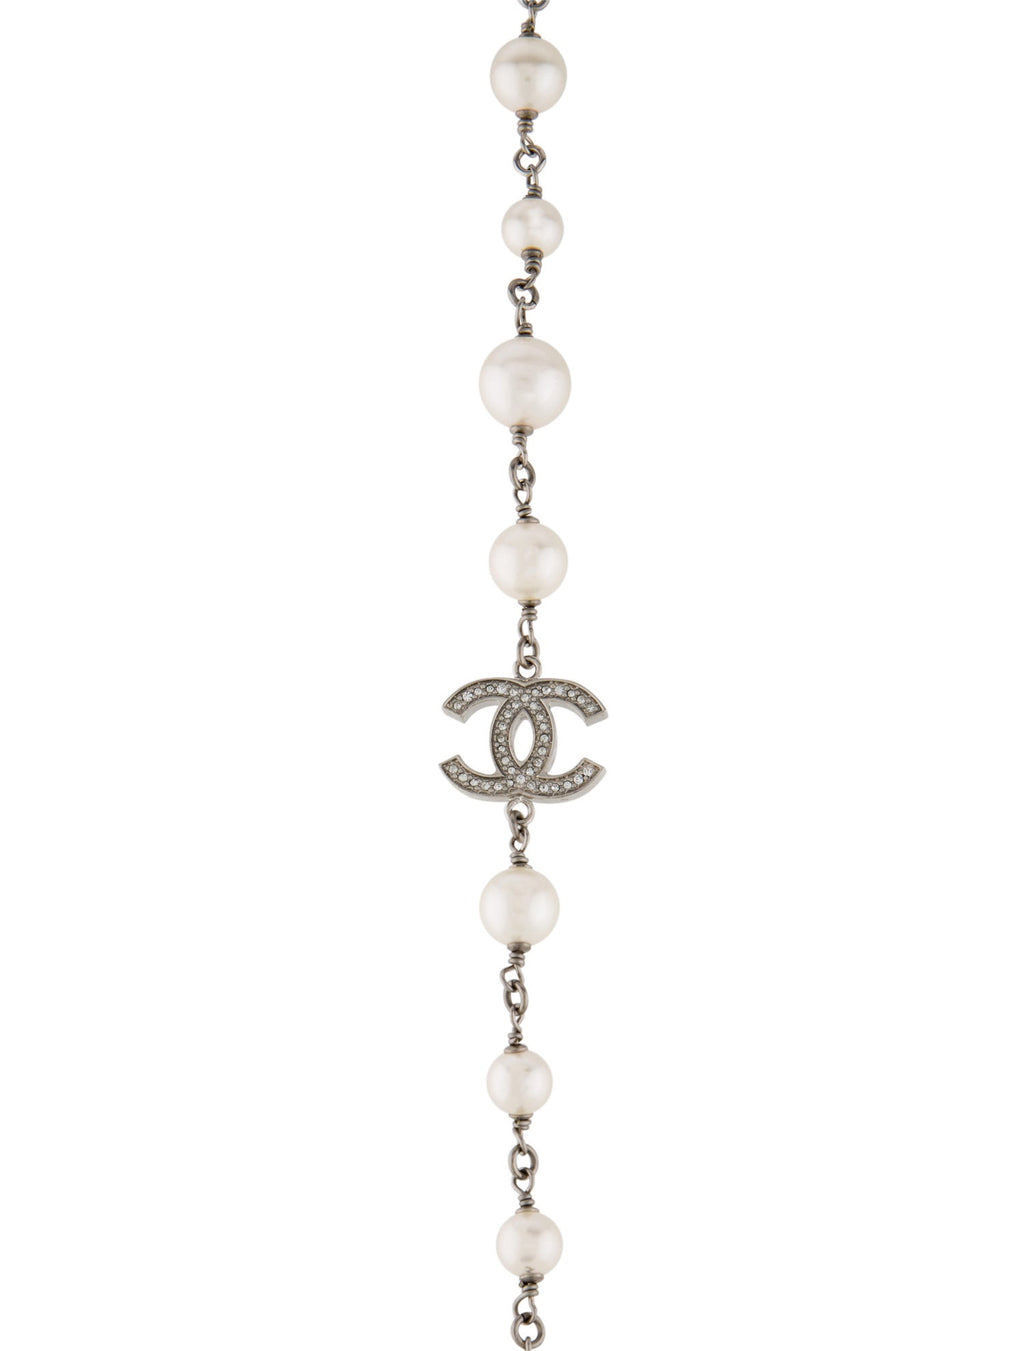 Chanel Faux Pearl & Strass Crystal CC Necklace